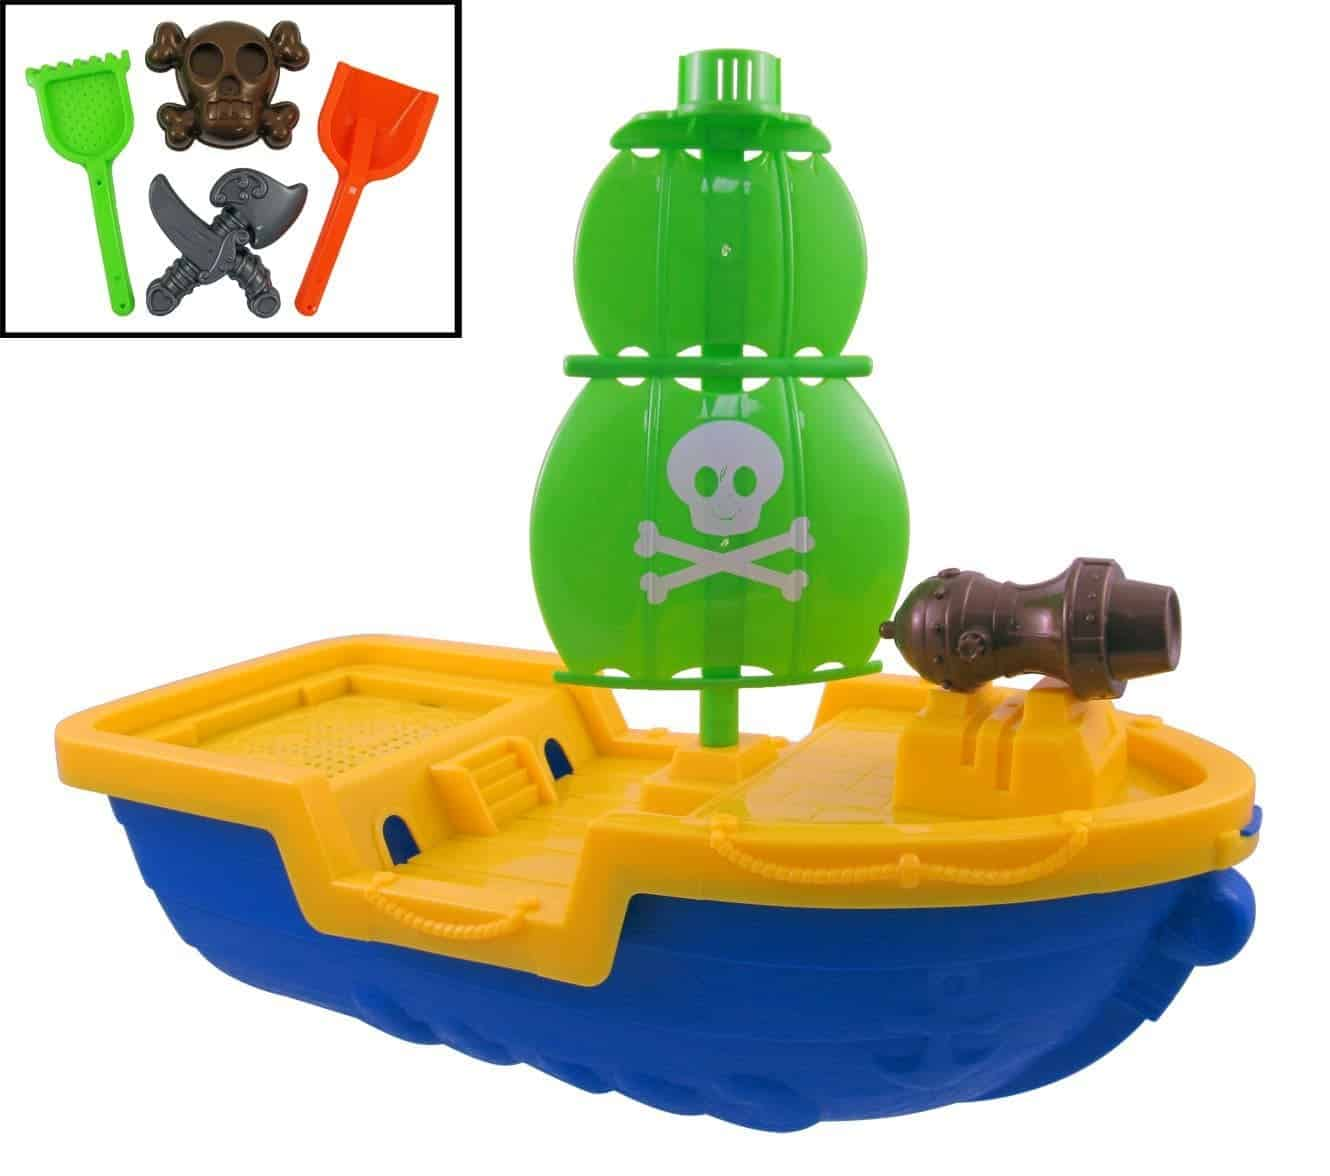 10+ Best Games and Toys for a Fun Day at the Beach: Pirate Ship Beach Toy Set| www.thepinningmama.com